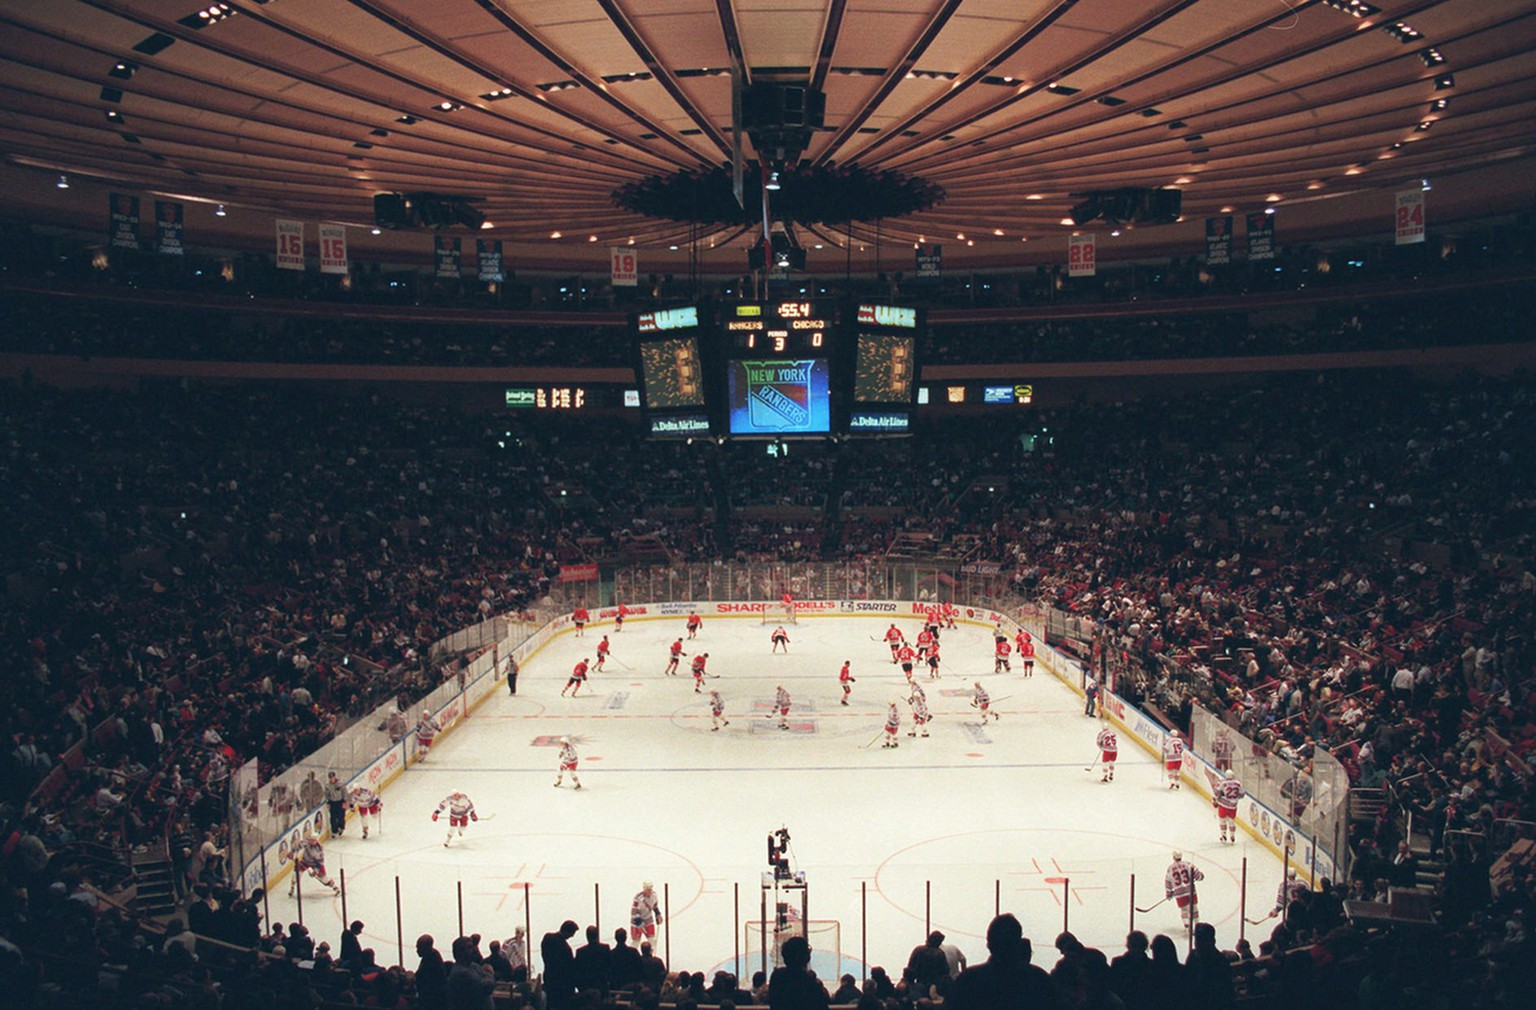 The New York Rangers play the Chicago Blackhawks in NHL action  Monday, January 27, 1997, in New York's Madison Square Garden. Hilton Hotels Corp. has offered to buy ITT Corp., owner of the Sheraton hotel chain, the Garden and the Rangers and the New York Knicks, for $6.5 billion. (KEYSTONE/AP Photo/Ron Frehm)